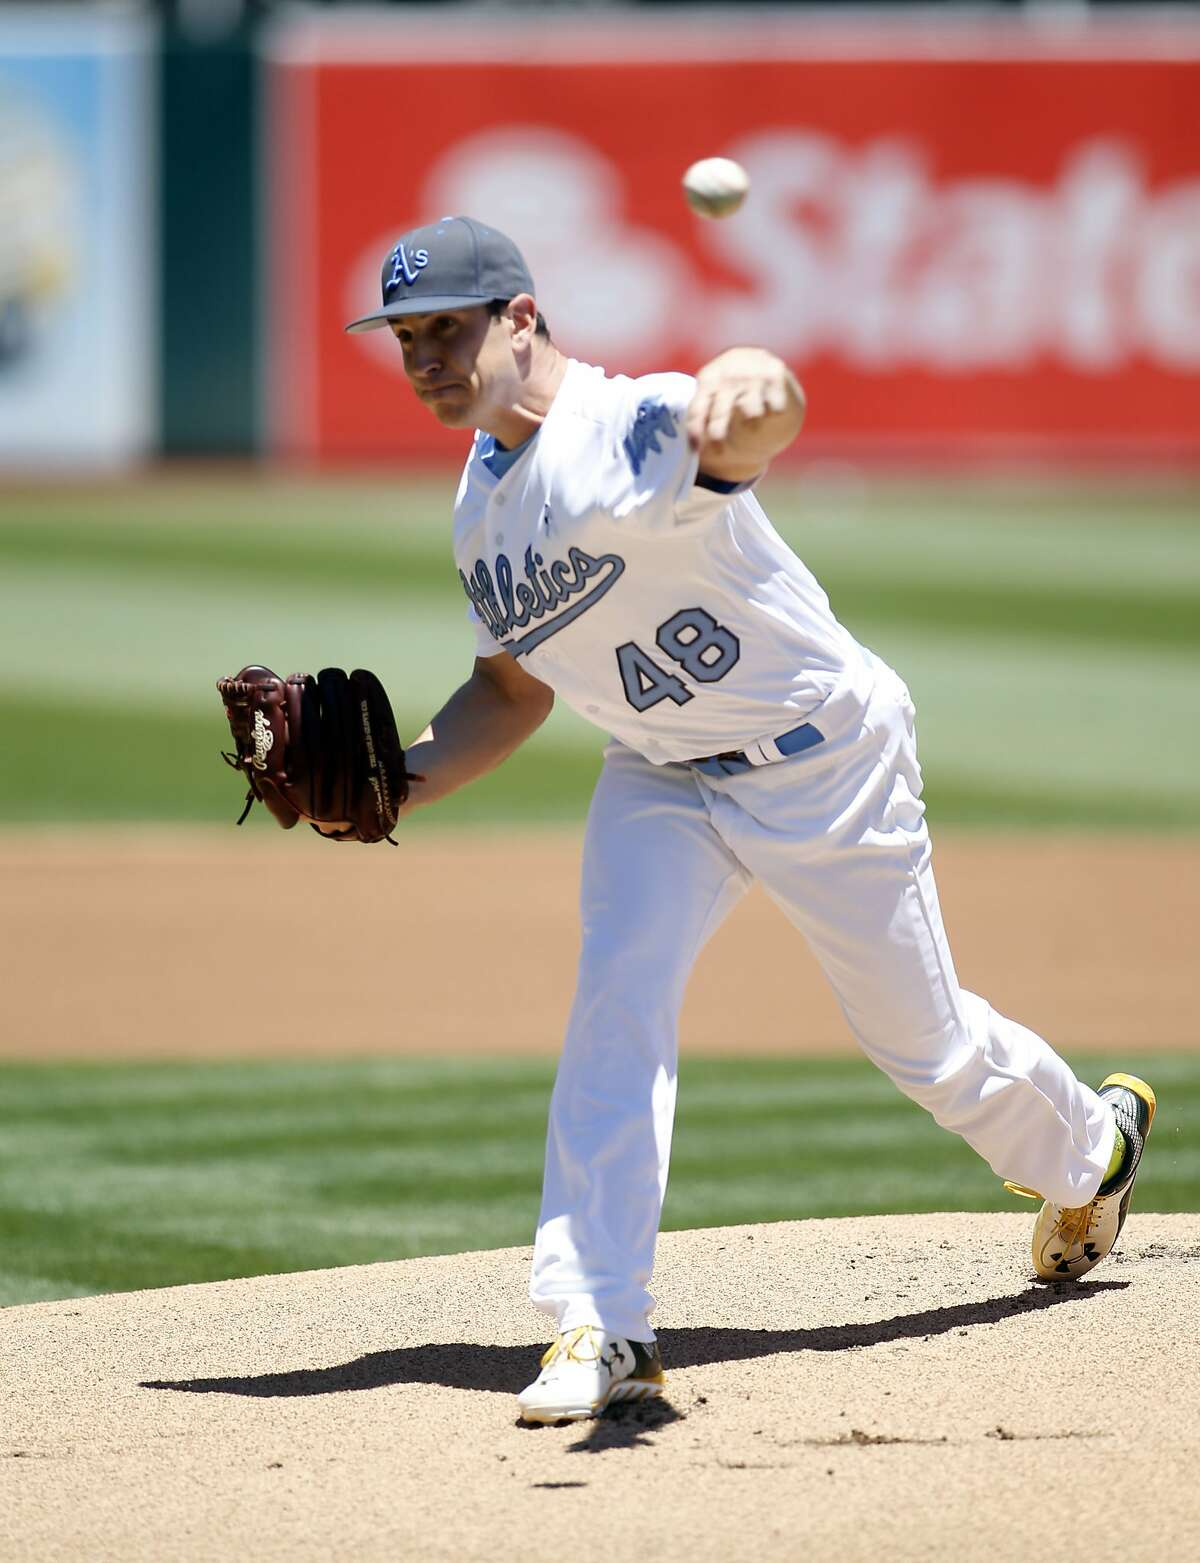 Oakland Athletics starting pitcher Eric Surkamp delivers against the Los Angeles Angels during the first inning of a baseball game Sunday, June 19, 2016, in Oakland, Calif. (AP Photo/D. Ross Cameron)